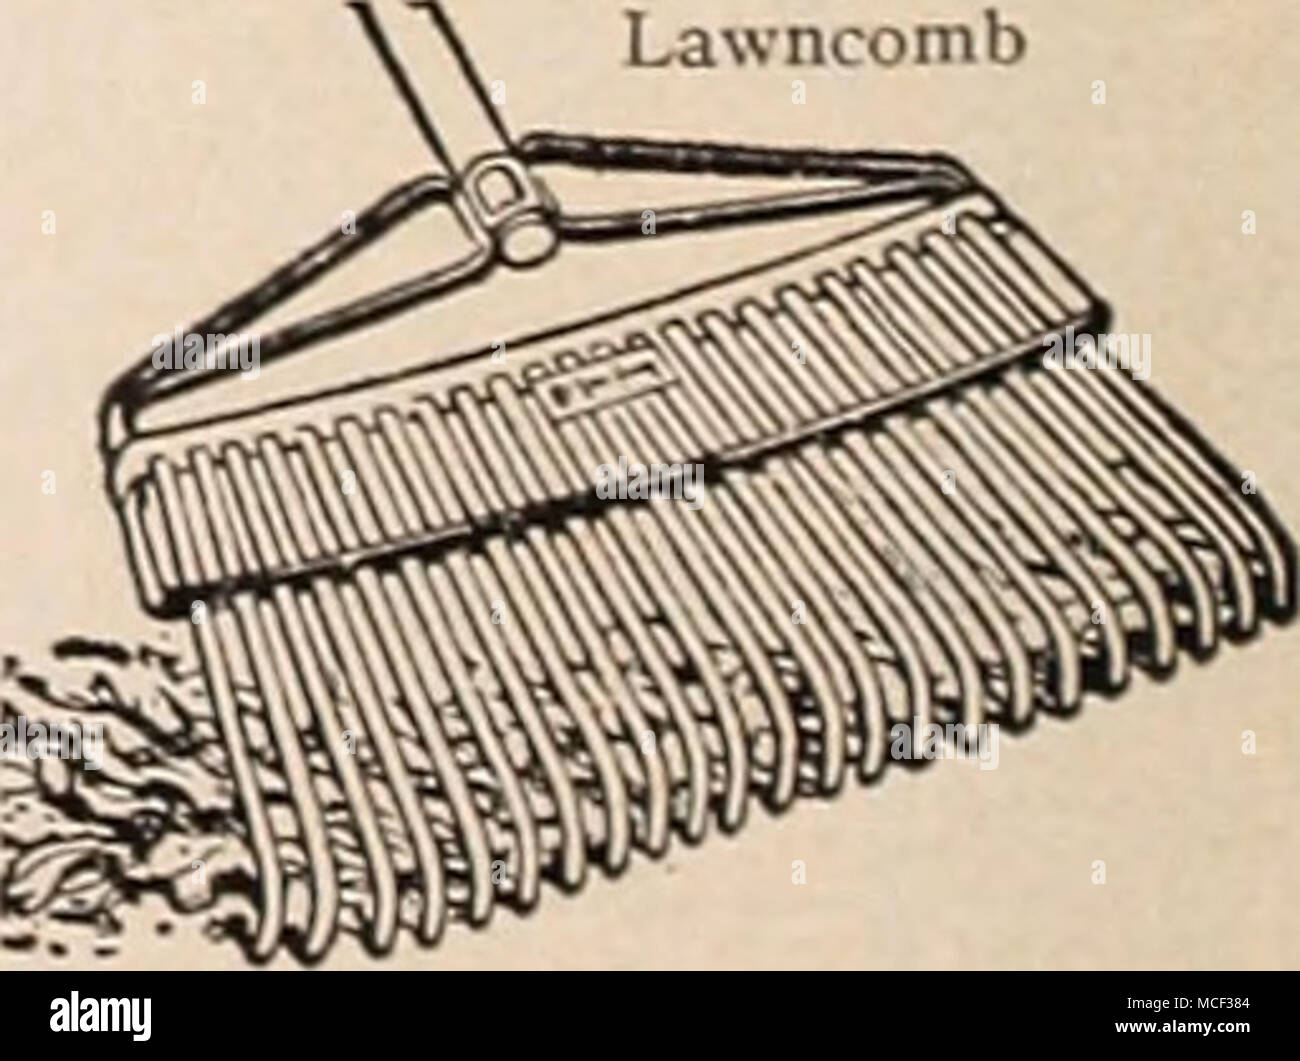 Lawncomb Flat Steel Teeth And A One Piece Steel Frame Combs The